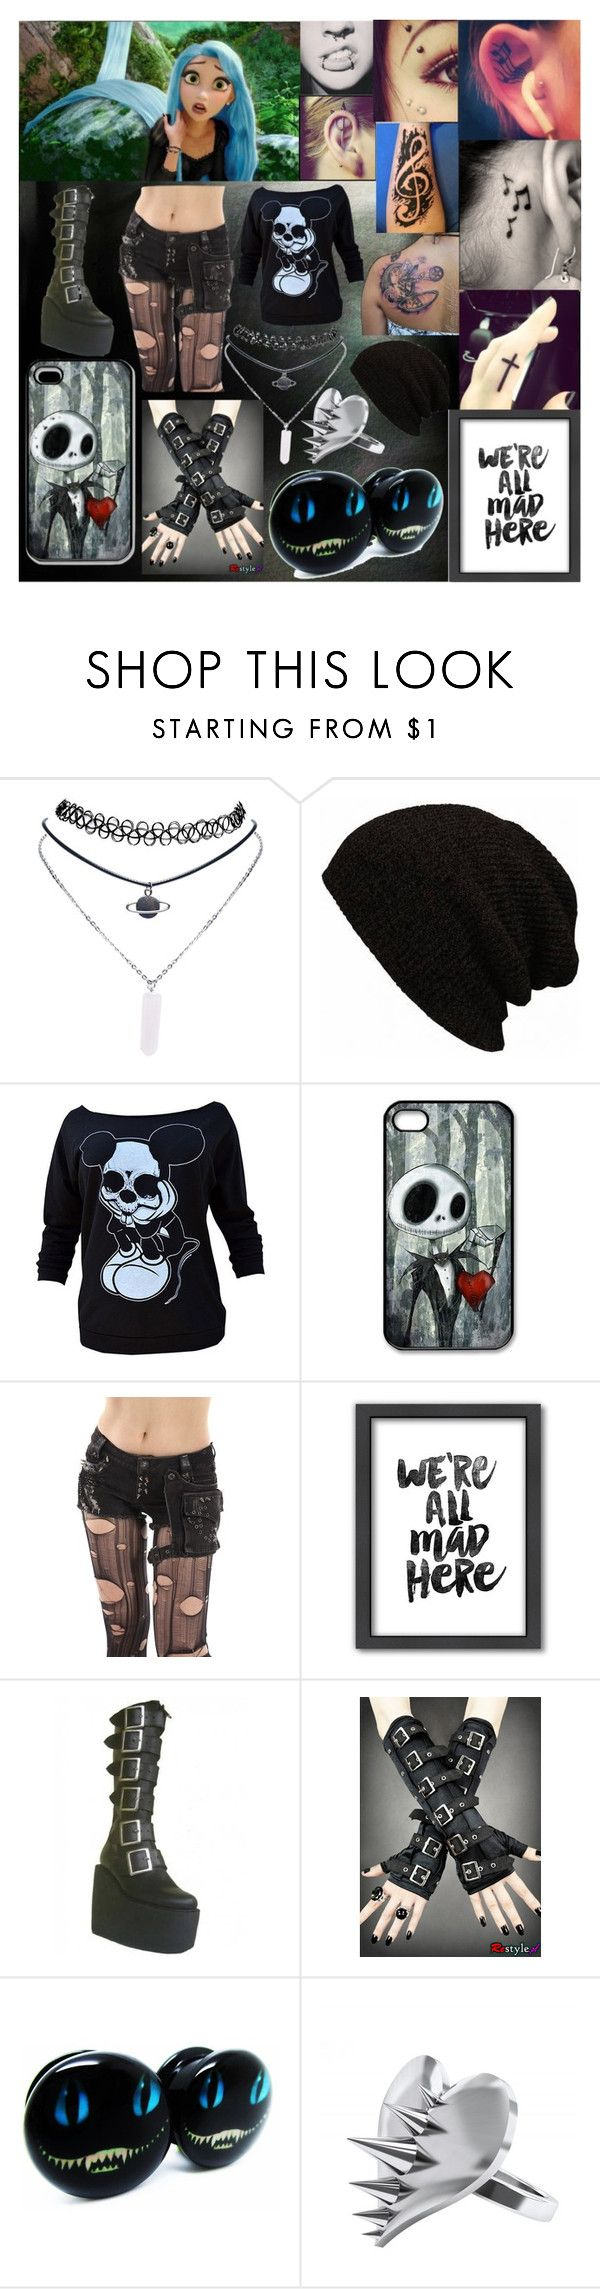 """Rapunzel Gone Bad"" by kittheneko ❤ liked on Polyvore featuring Wet Seal, Disney, Americanflat, CO and LUSASUL"